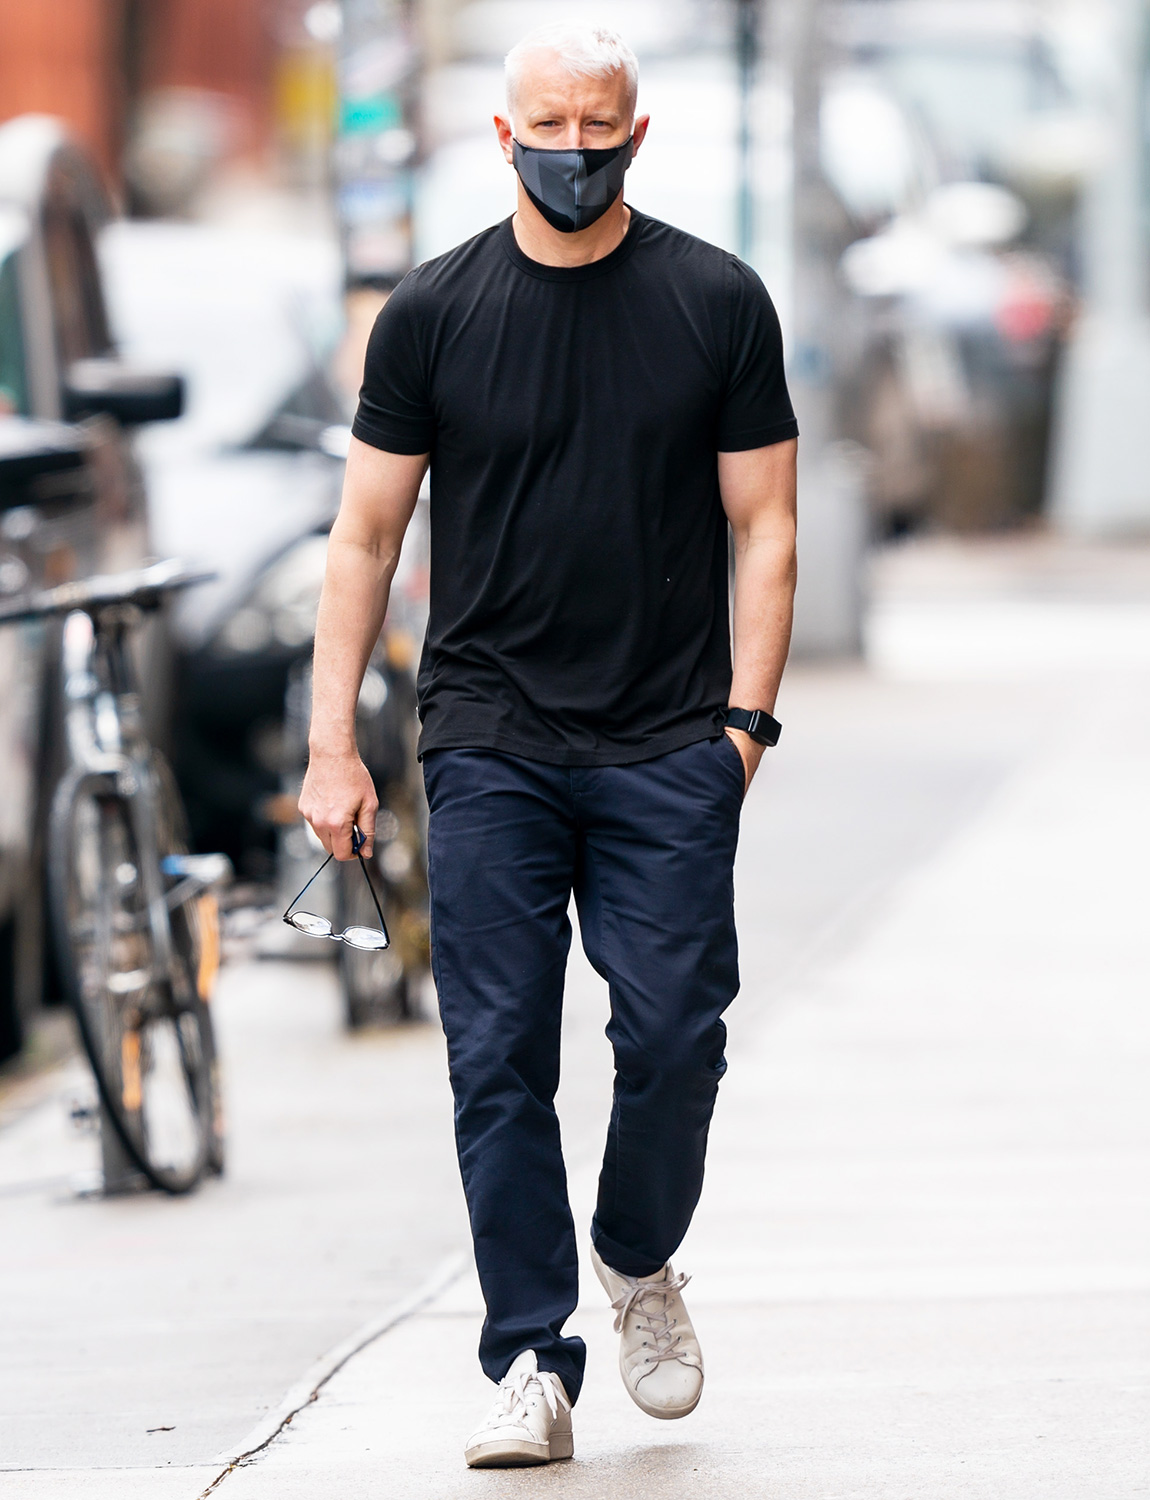 Anderson Cooper is seen in the West Village on May 01, 2020 in New York City